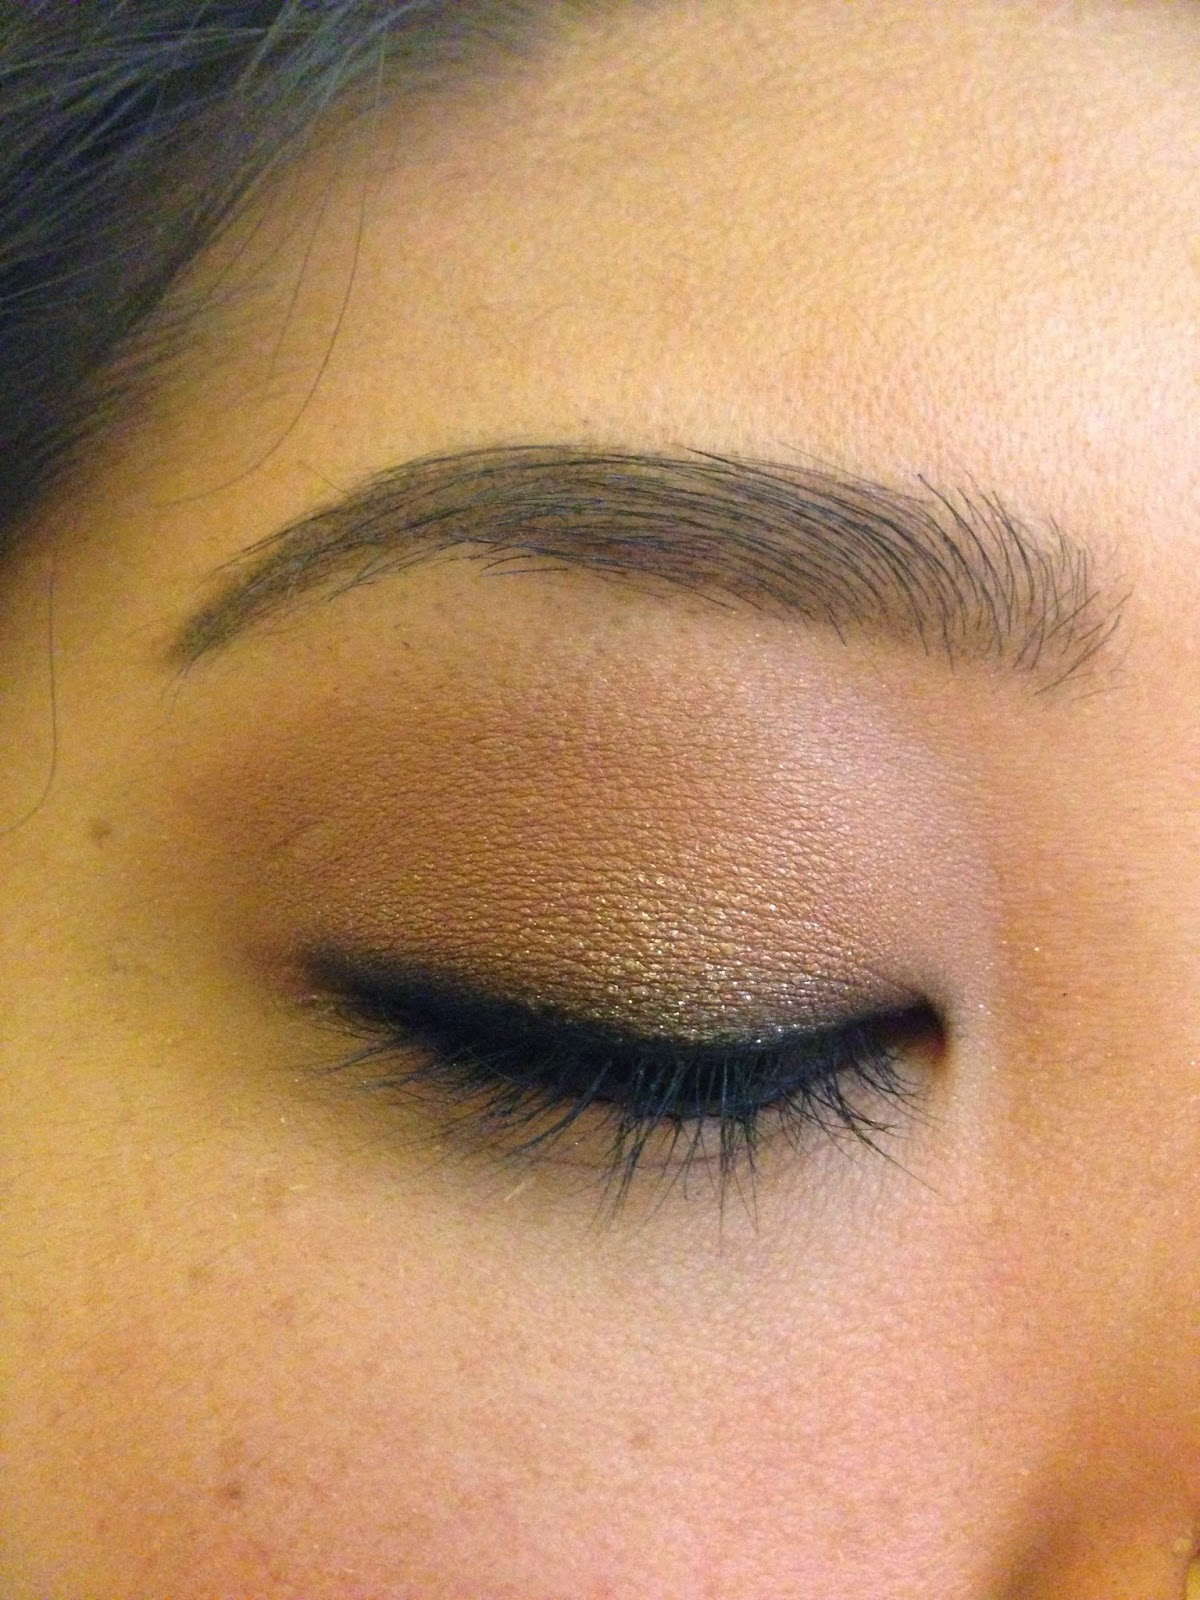 847e08b902f On your bottom lash line, smoke out the shimmery brown shadow from inner to  outer corner. I used the same NARS